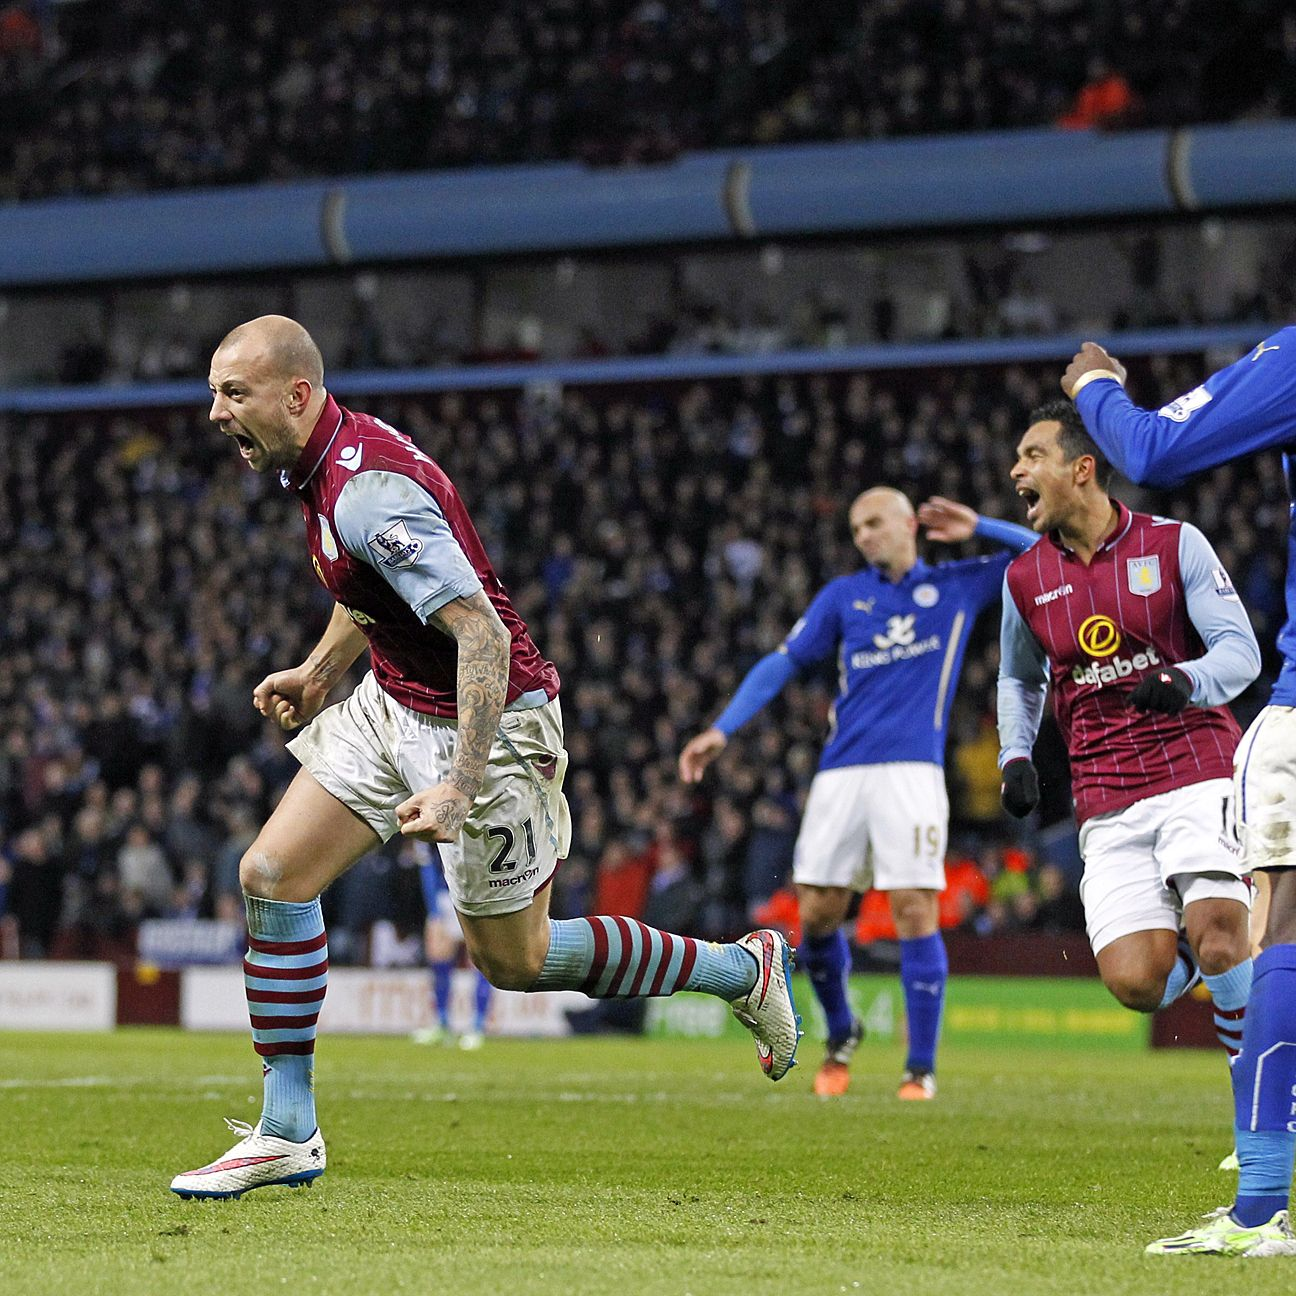 Alan Hutton capped off Villa's stellar day with the match-winner in the 70th minute.